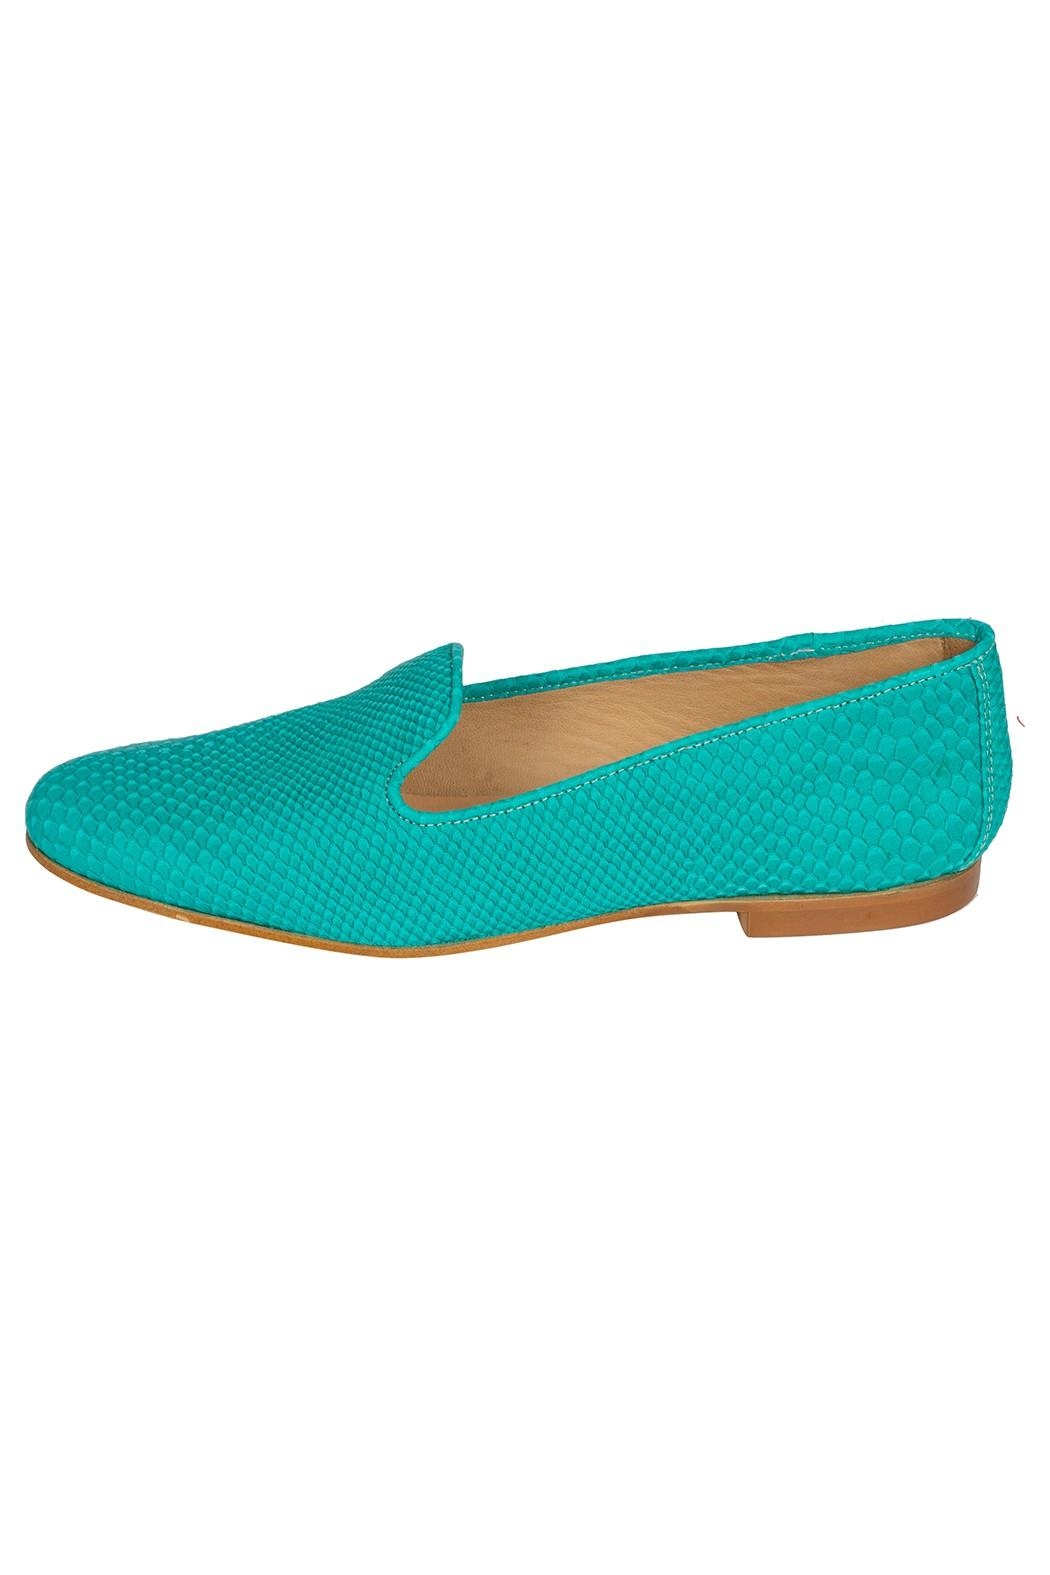 Pascucci Leather Bright Slippers - Main Image